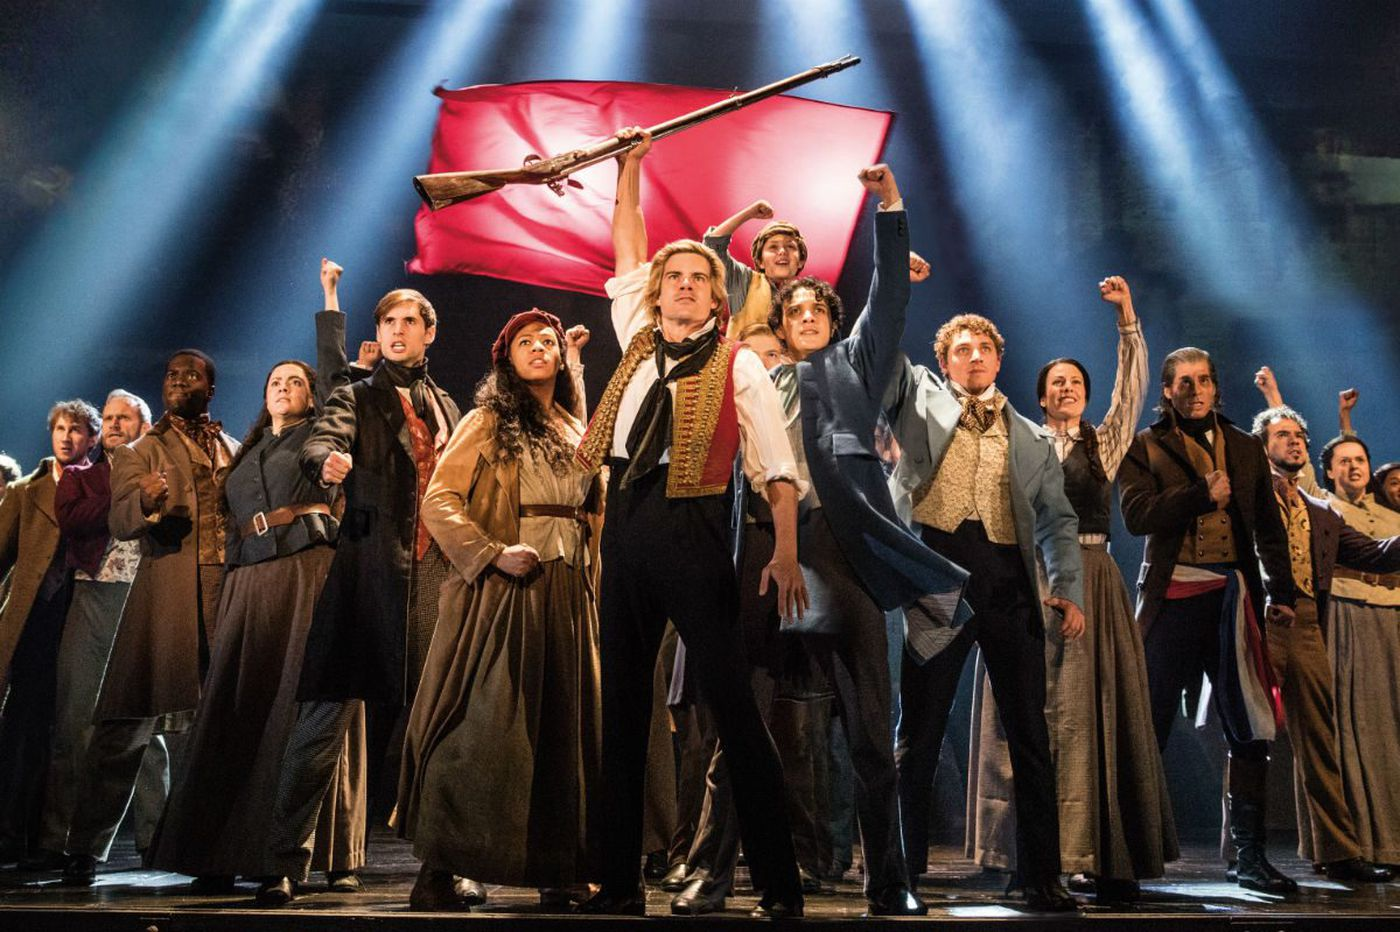 'Les Mis' is back in Philly, and the composer himself gave us some thoughts on why it's aged so well